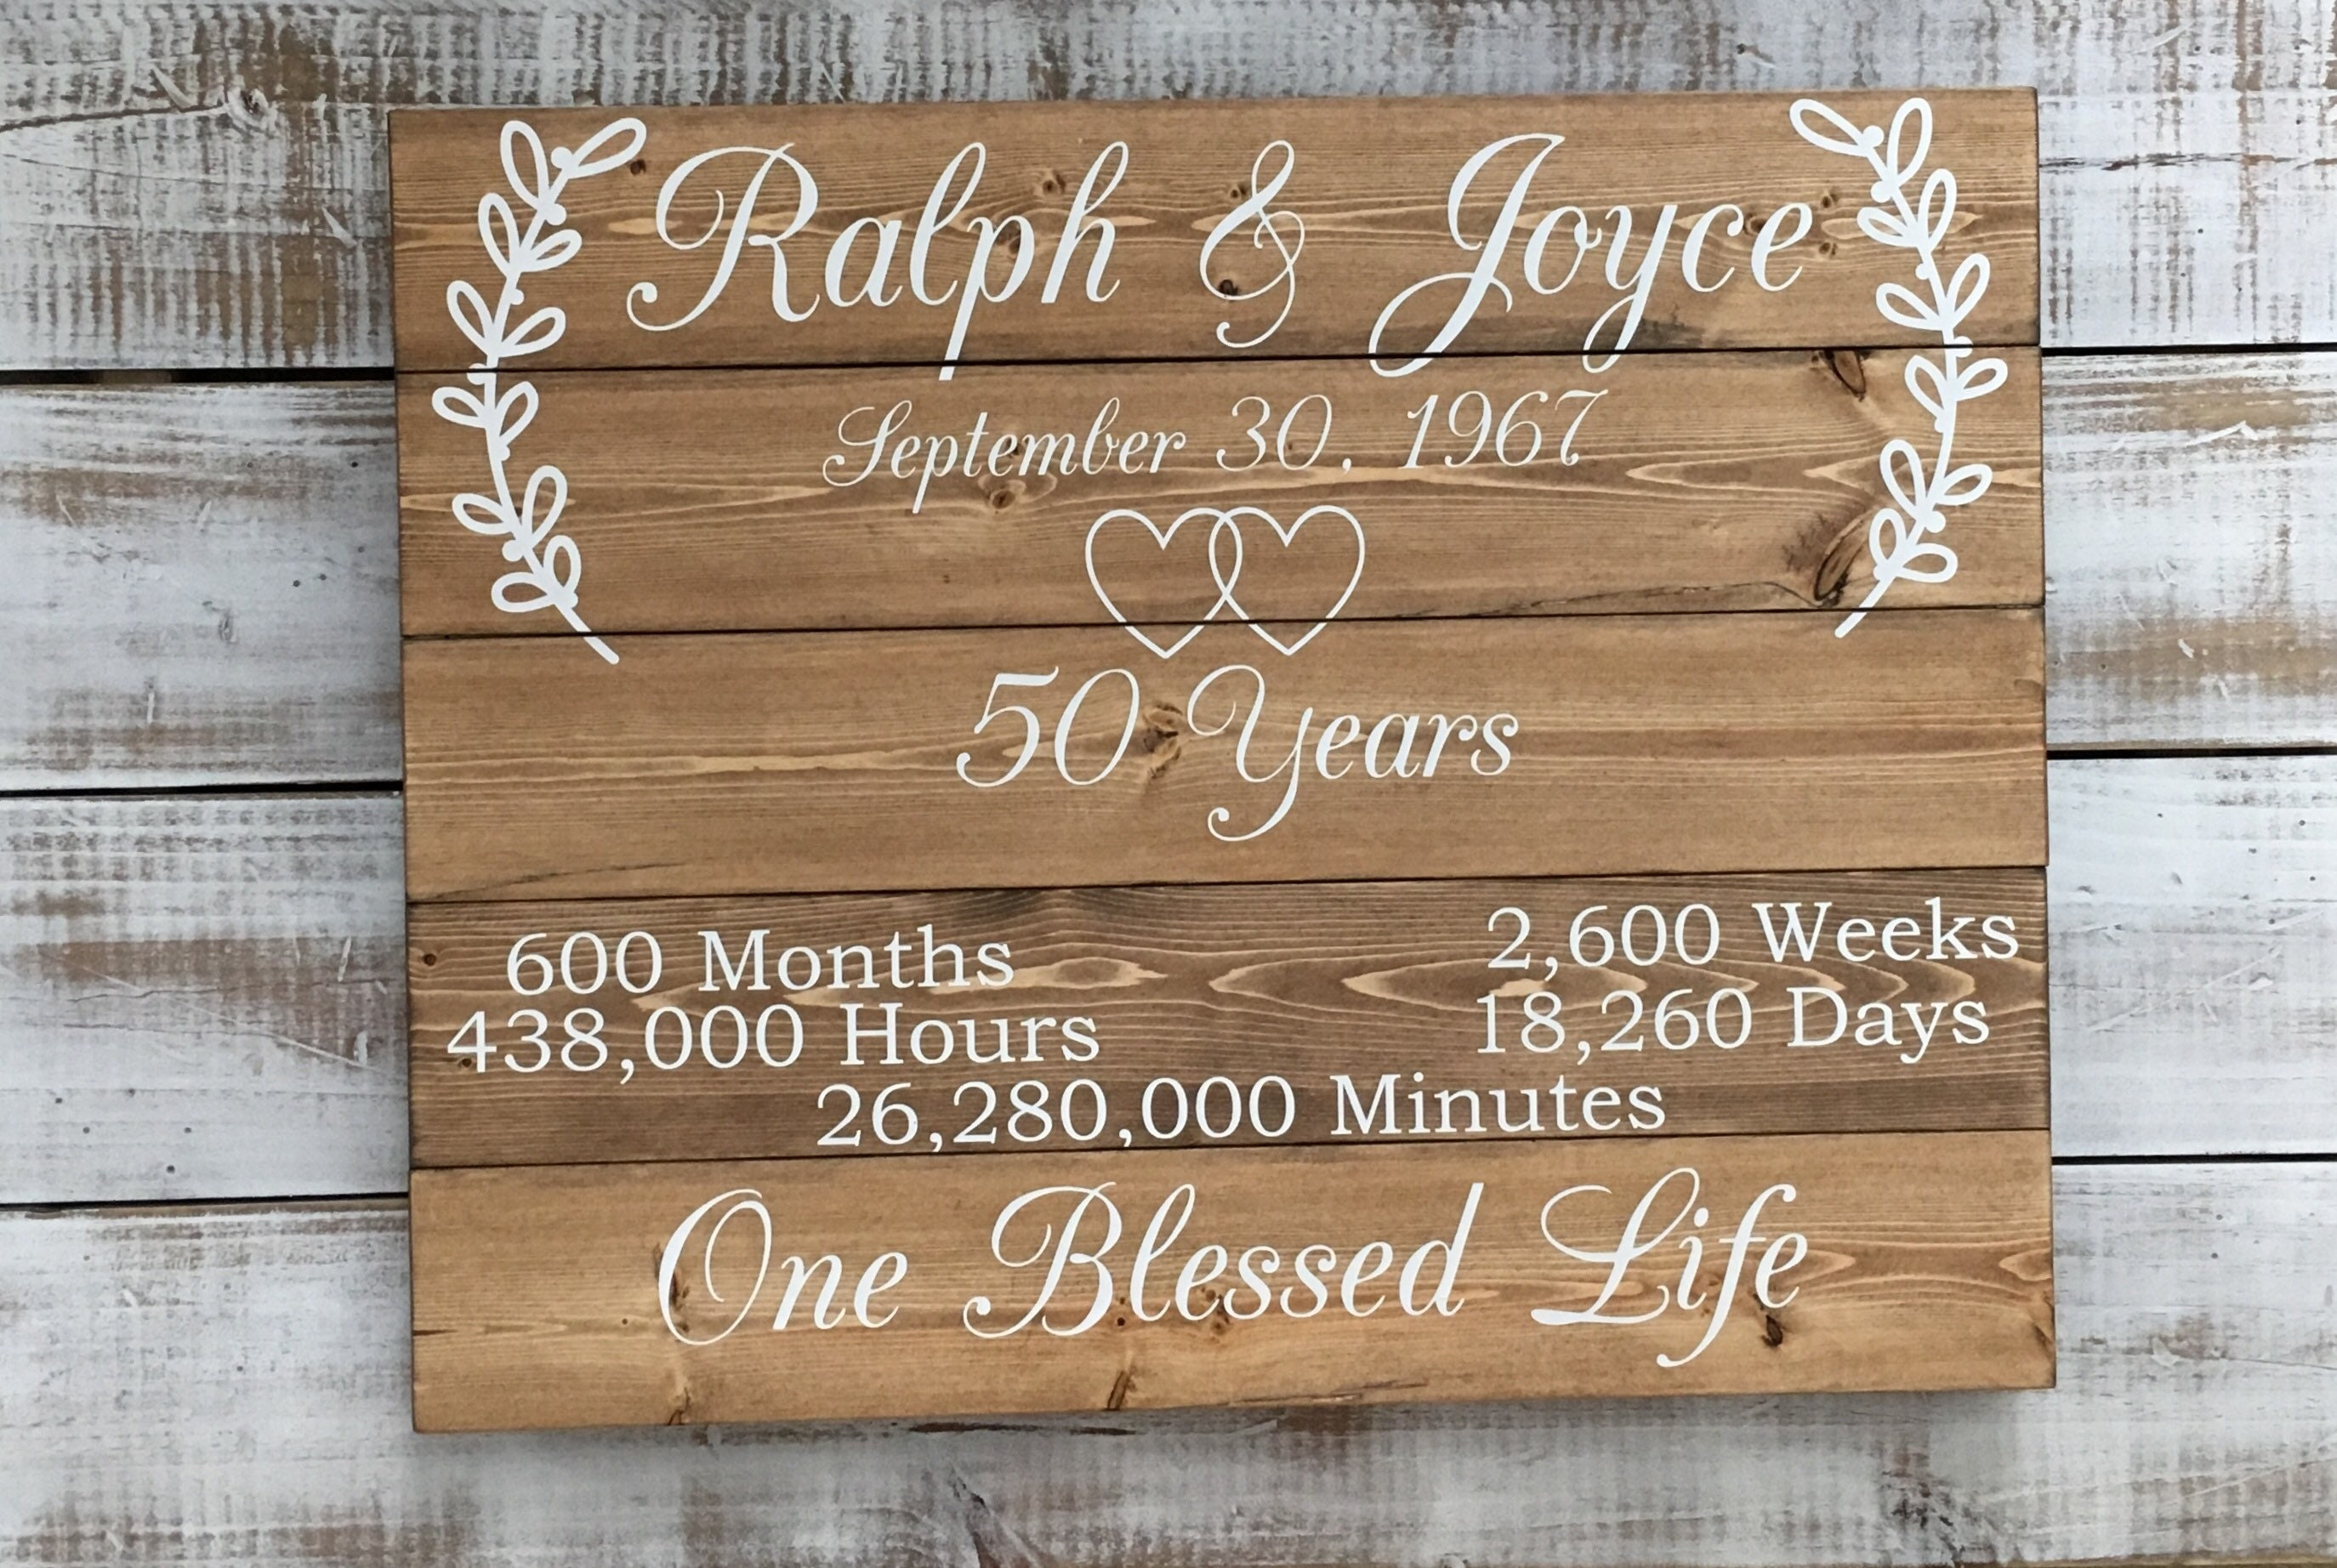 50th Anniversary Wedding Gift Ideas: 50 Year Anniversary 50th Anniversary Ideas Custom Wood Sign